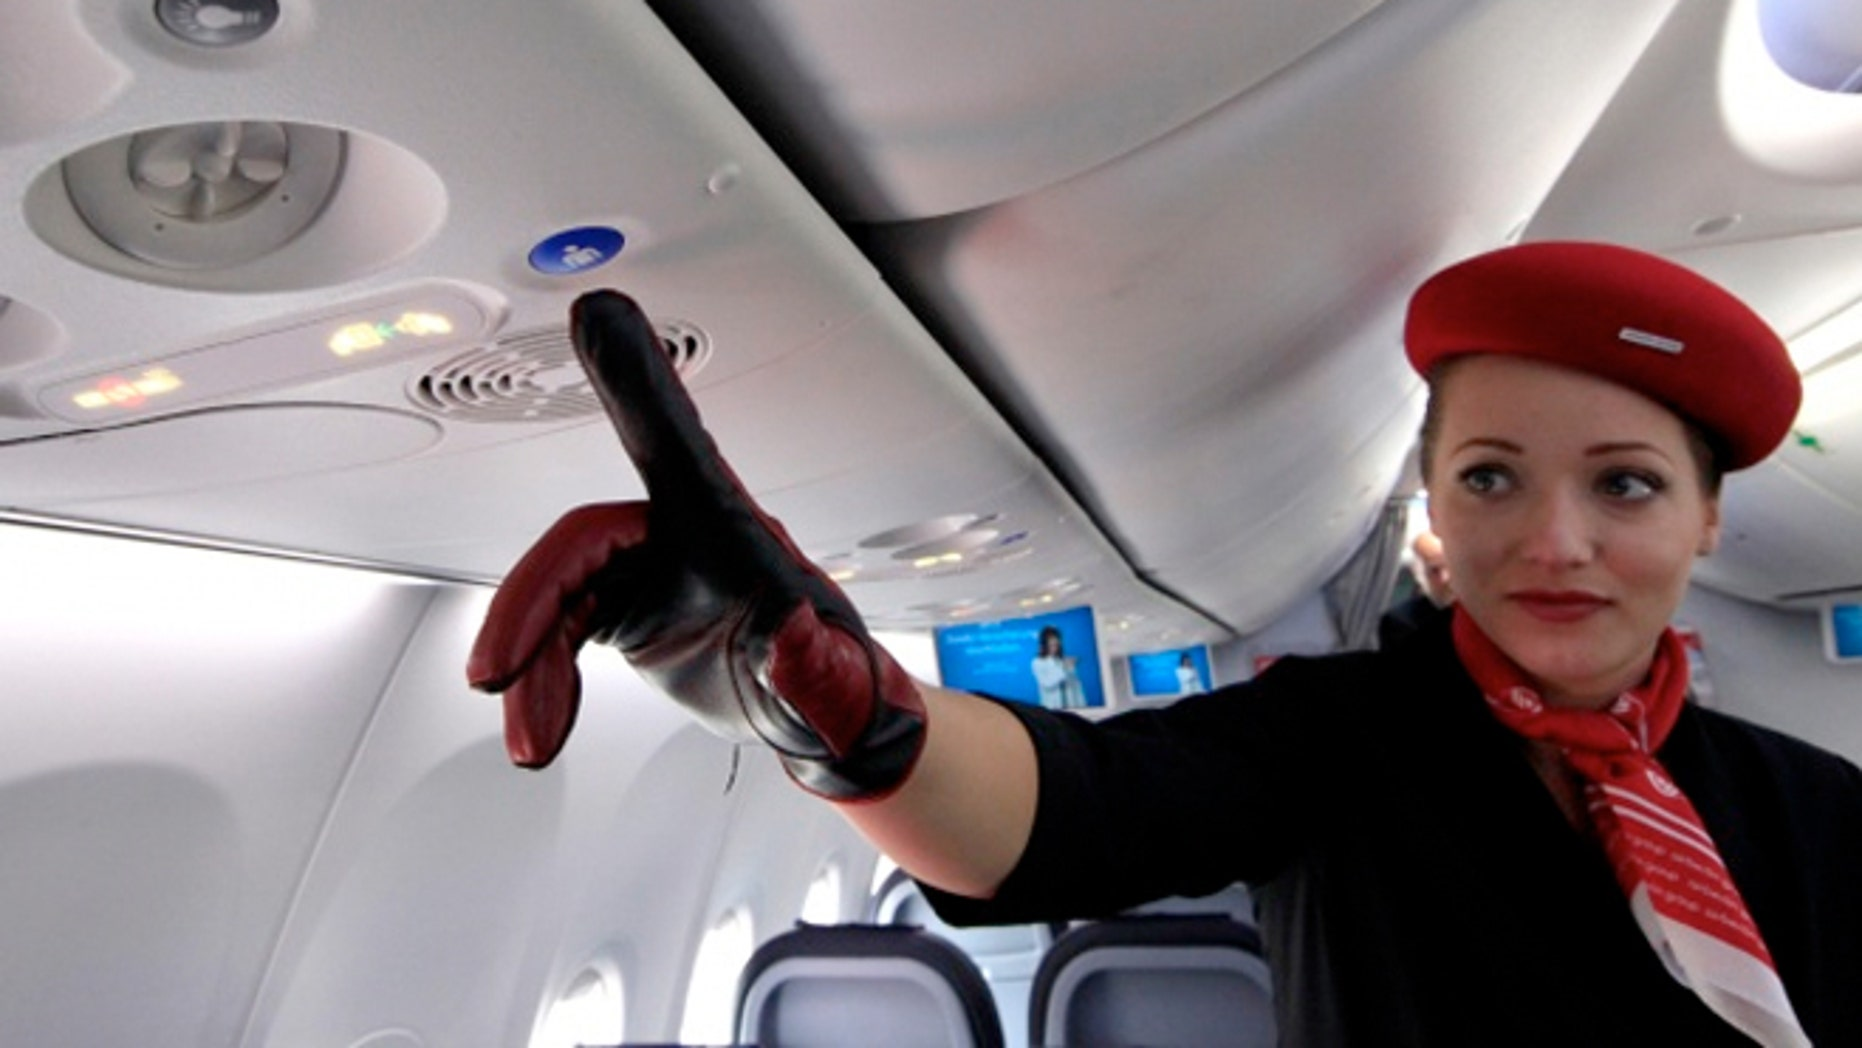 From heating up plates to make dishes hotter, to double bagging the coffee grinds, flight attendant have a bag of tricks to provide better service.